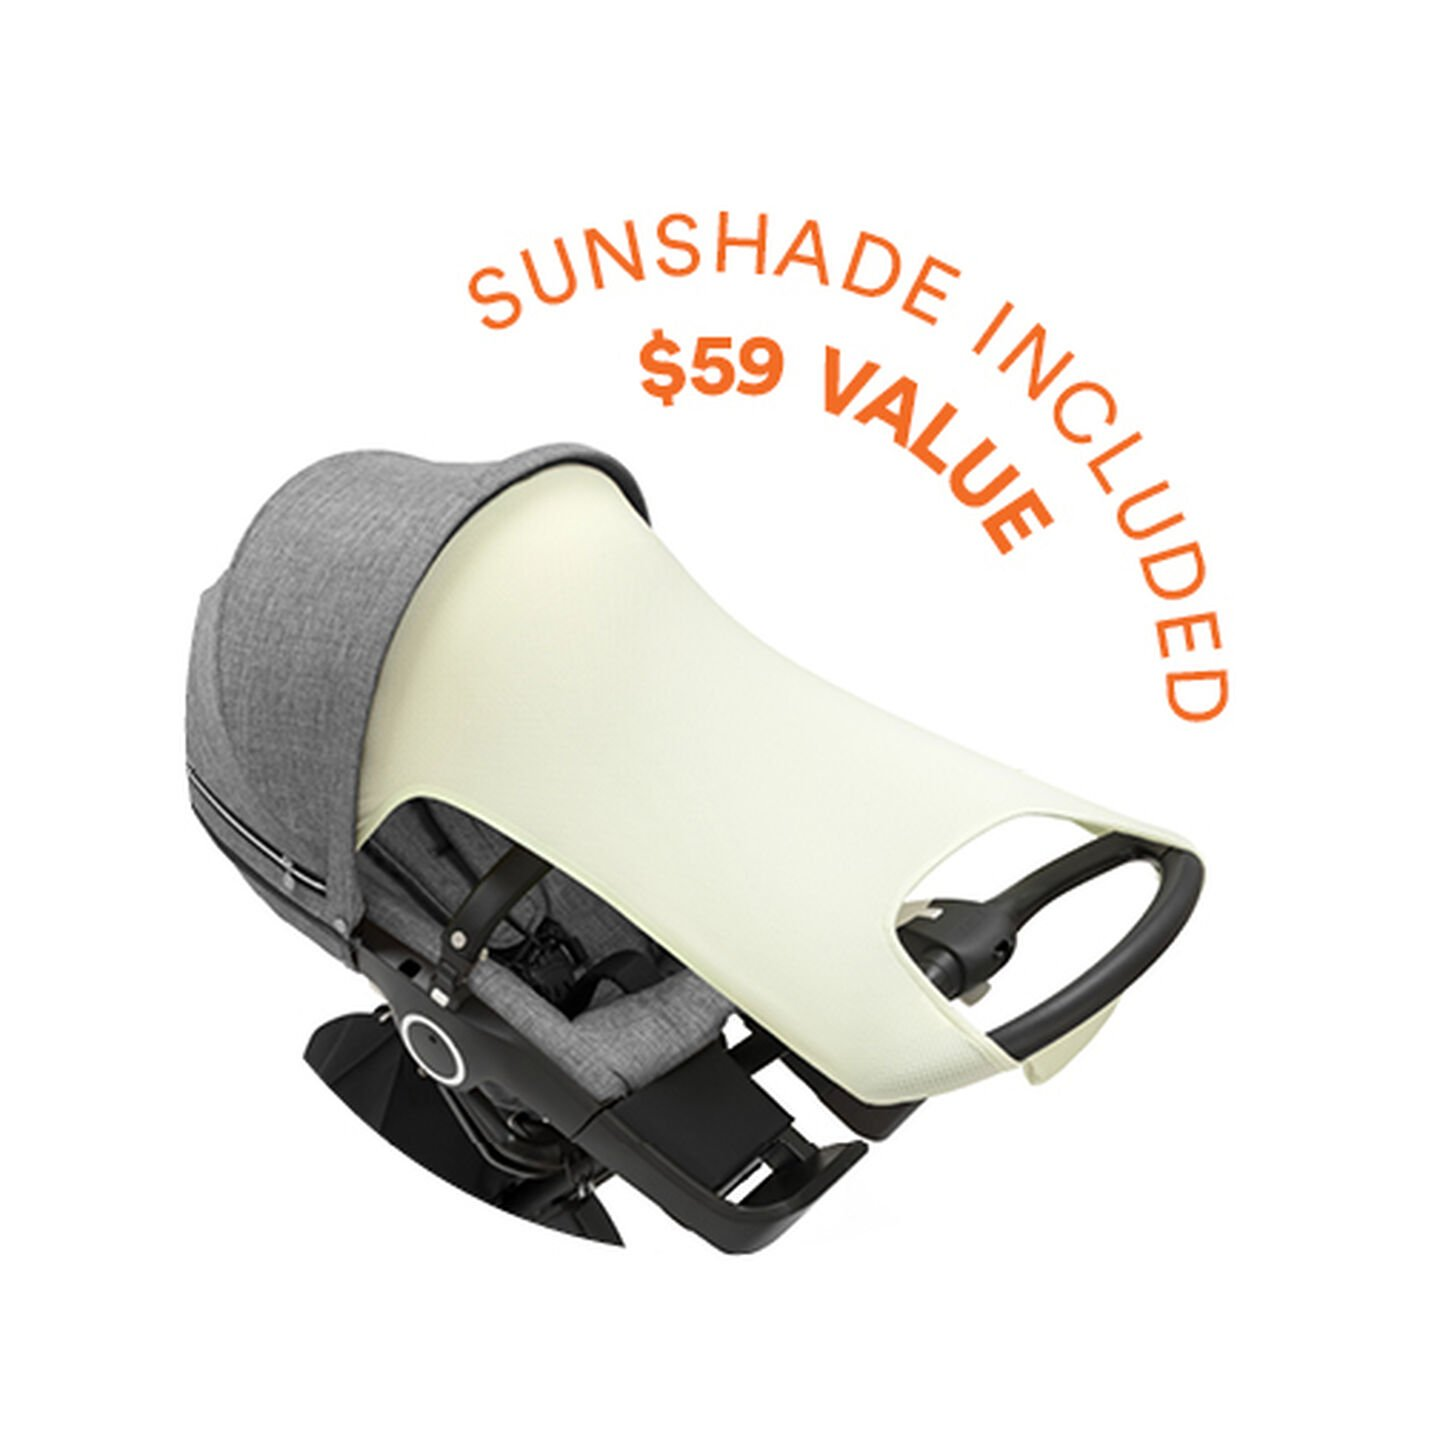 Stokke® Xplory®. Sunshade included